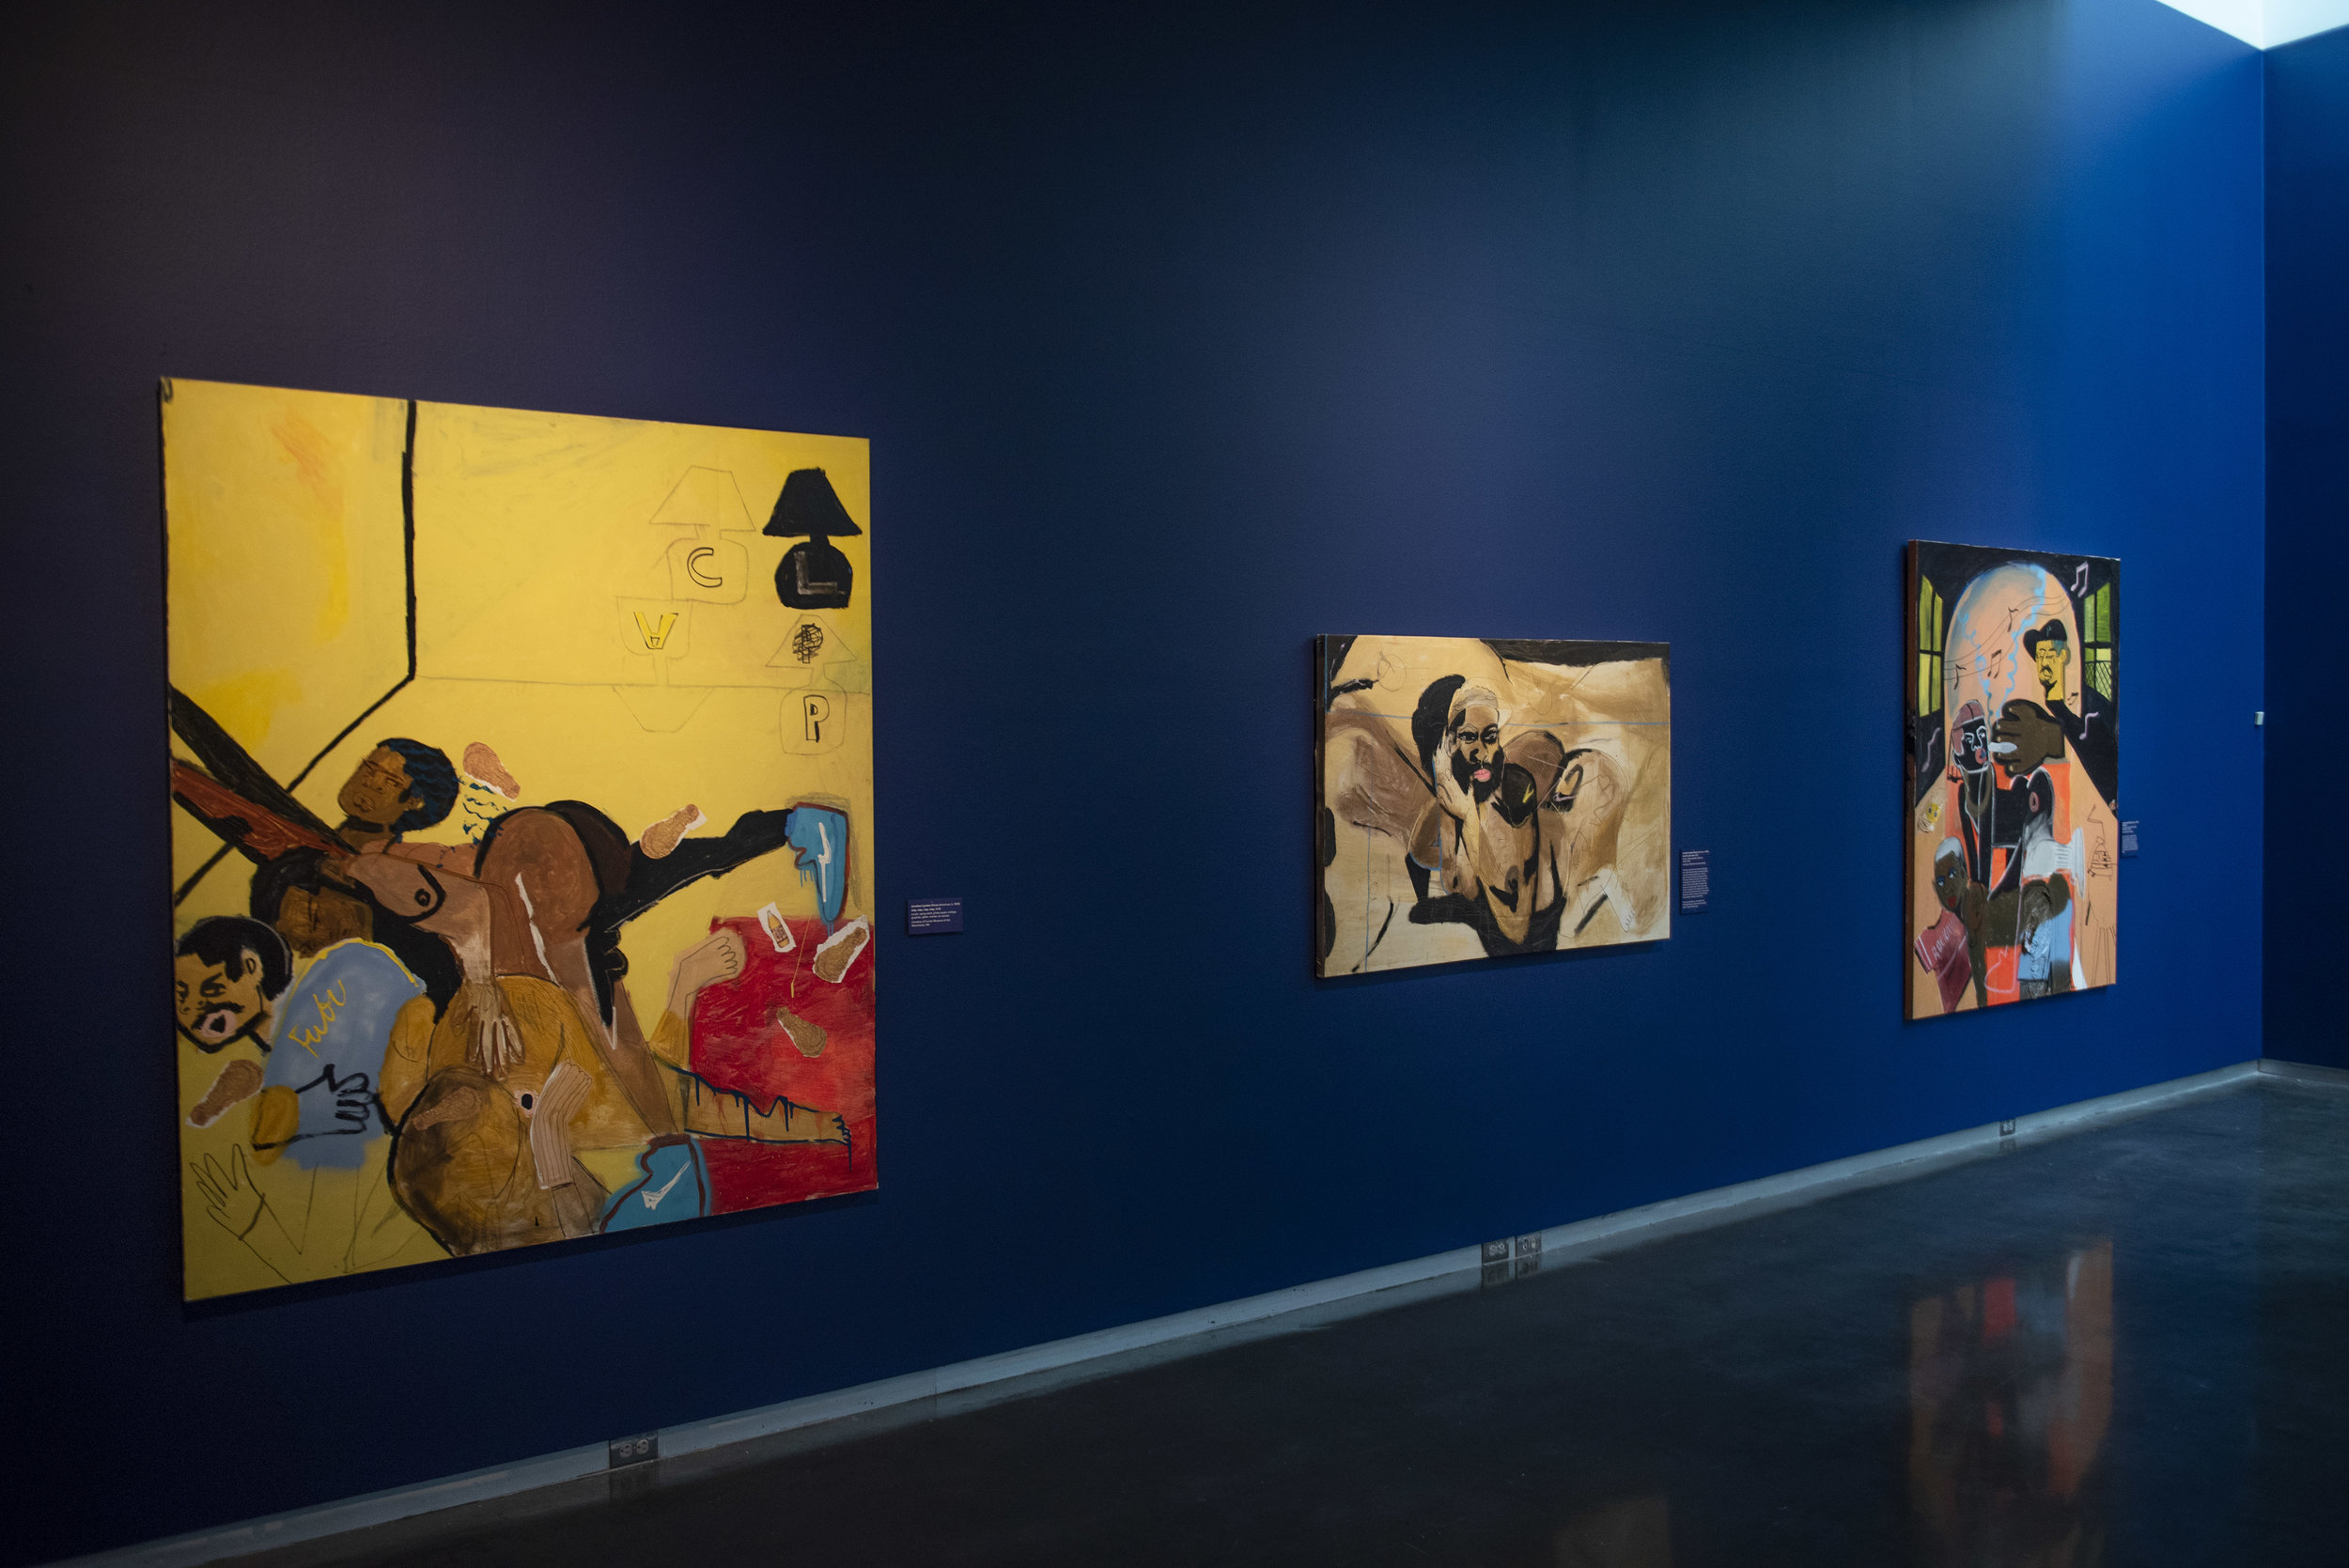 Chase's paintings (from left to right)  clap,clap,clap,clap ;  peaches and cream ,  3SUM displayed in Semblance at LSU Museum of Art